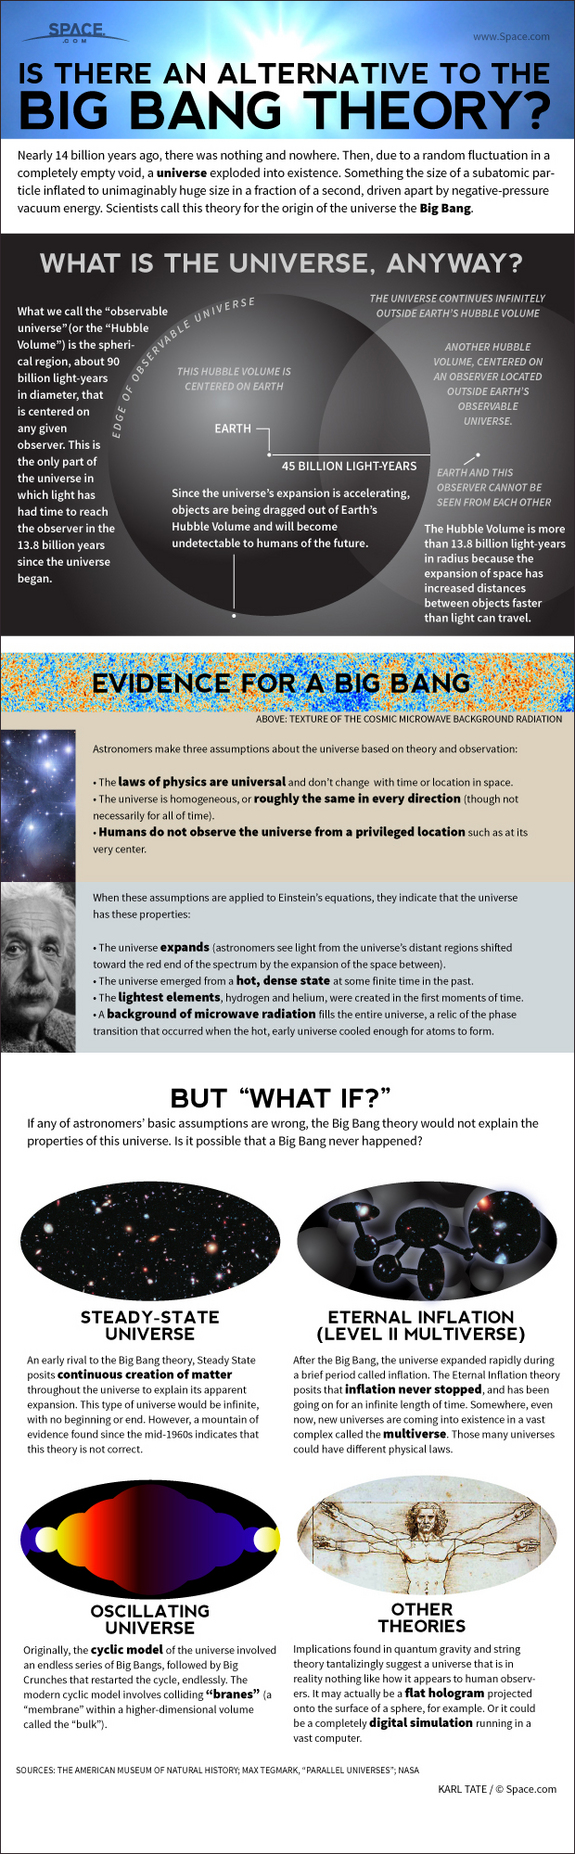 an analysis of two popular theories explaining the creation of the universe The creation of the universe is typically explained by two popular beliefs with this theory it is obvious to see the two explanations, scientific and biblical are very different scientific belief is the universe was created through hot energy expanding and eventually creating our galaxies etc.